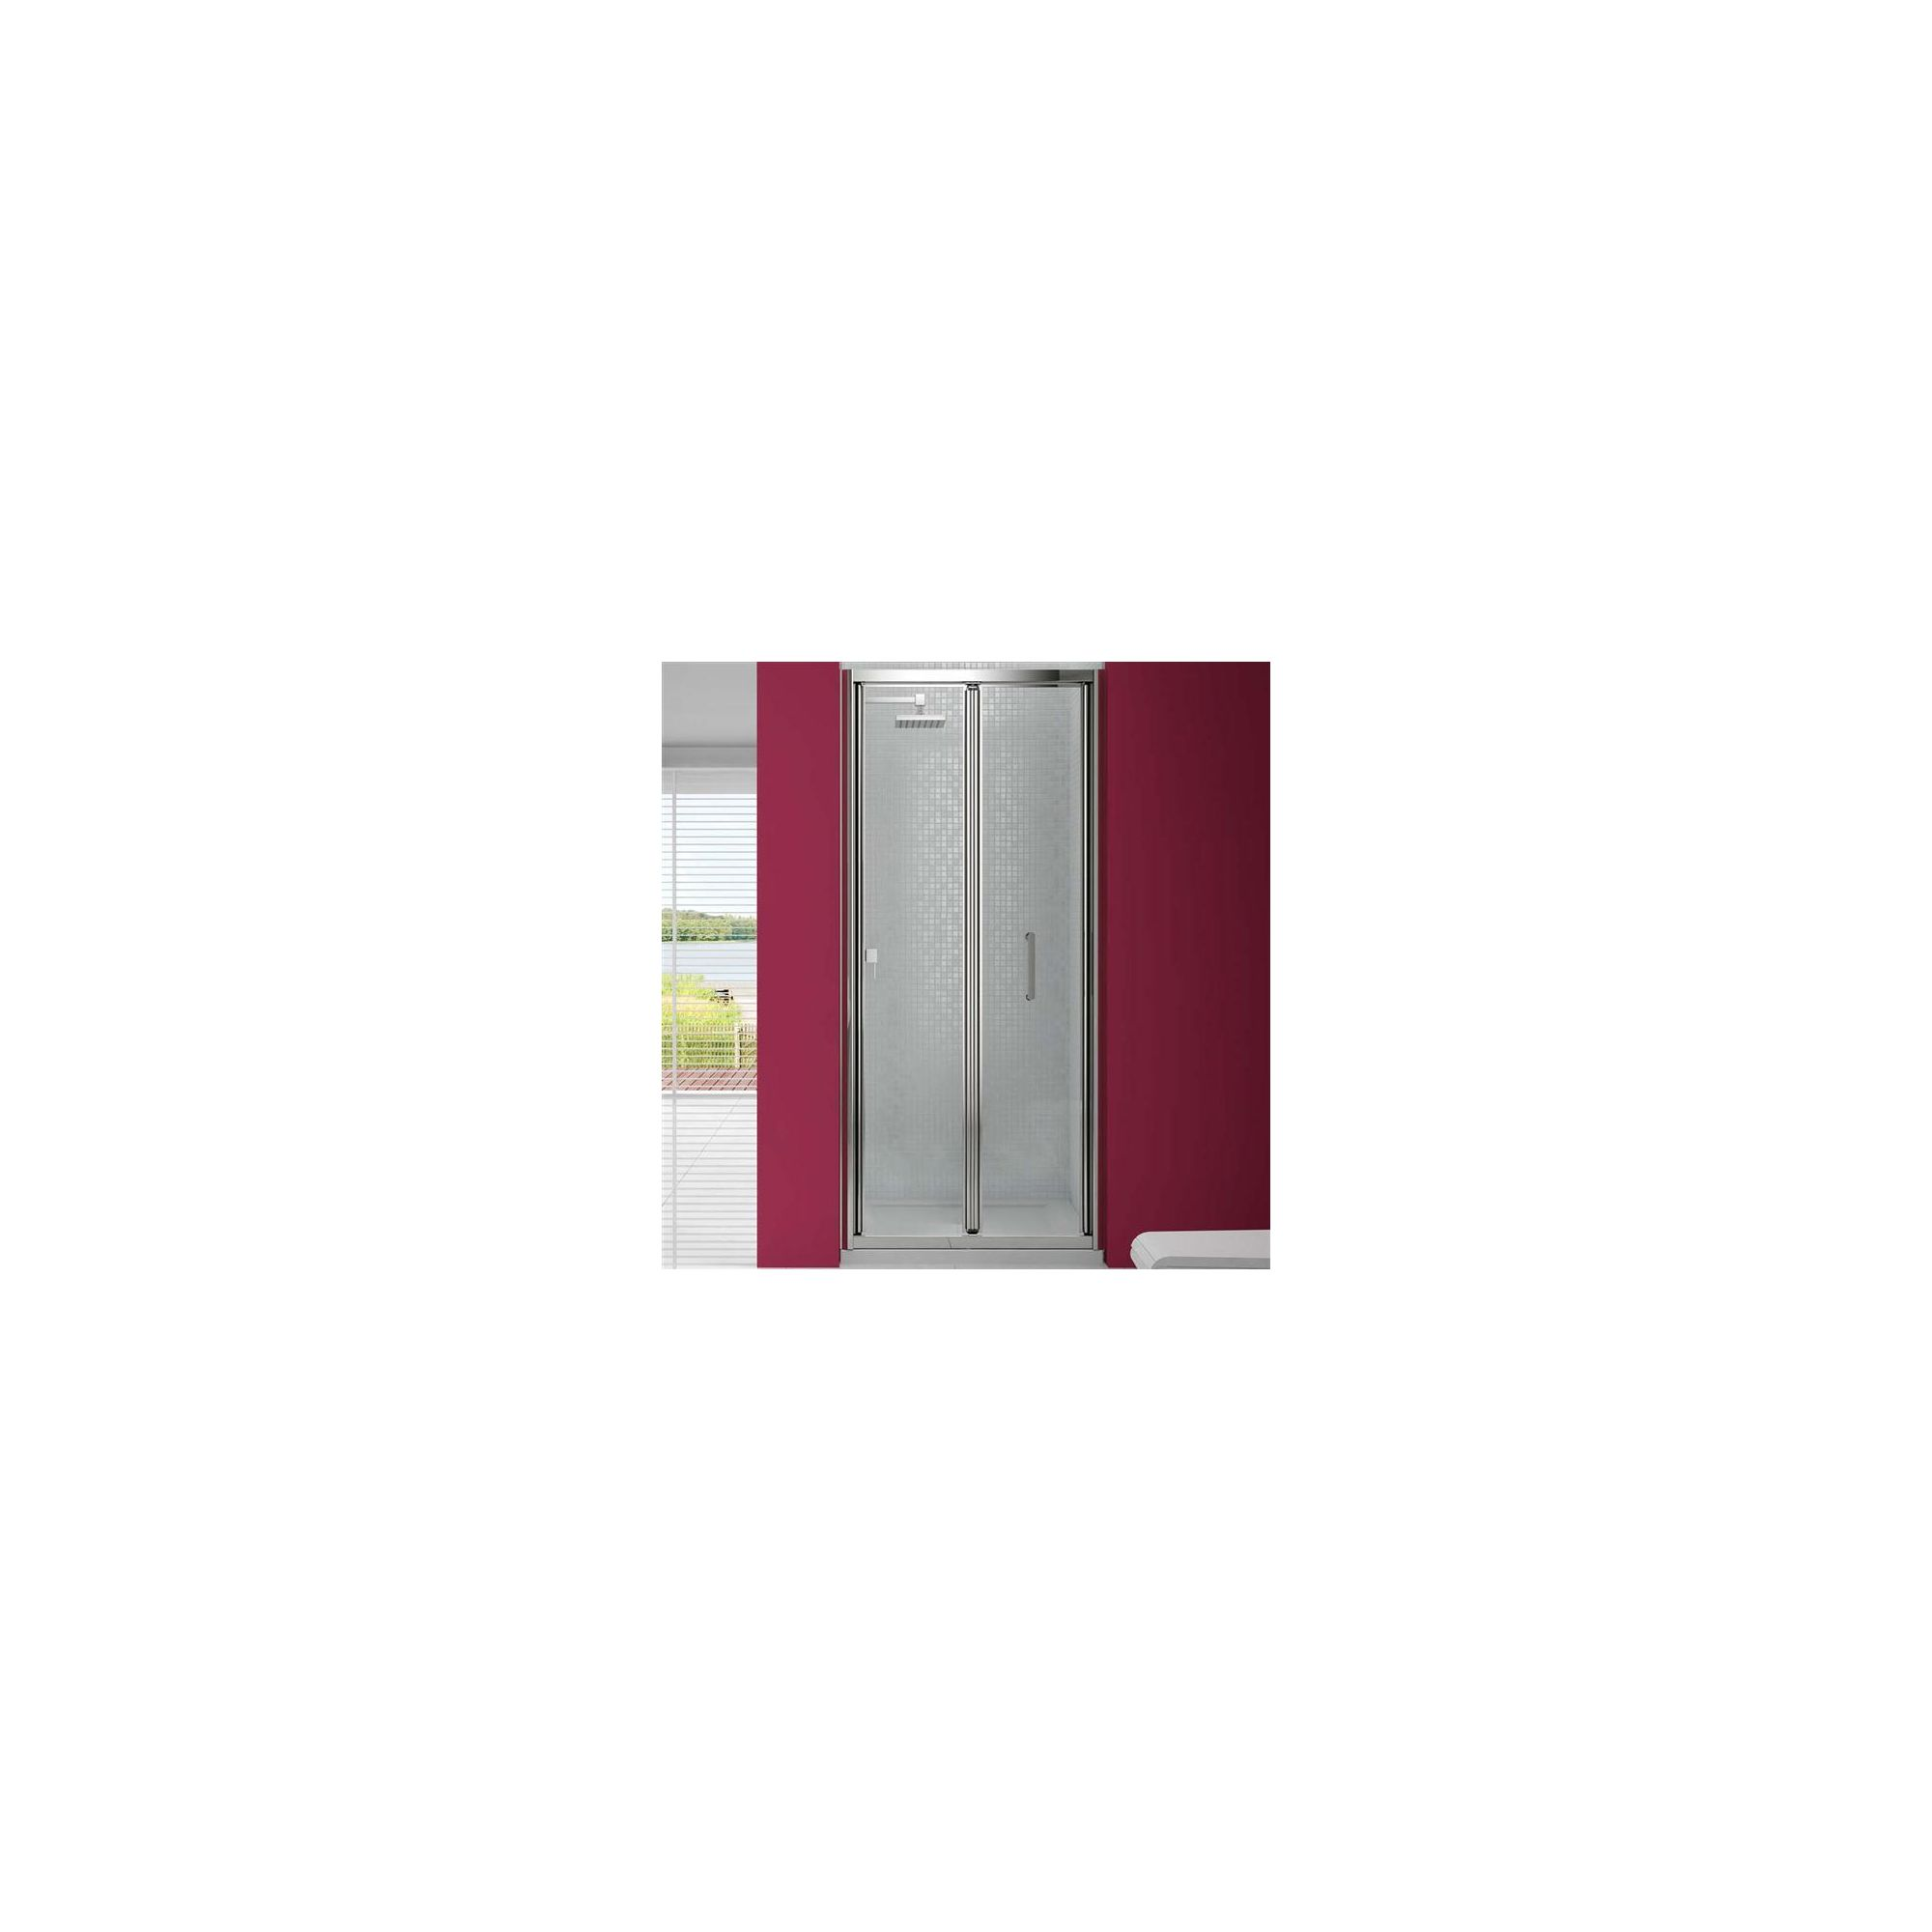 Merlyn Vivid Six Bi-Fold Shower Door, 760/800mm x 760/800mm, 6mm Glass at Tesco Direct